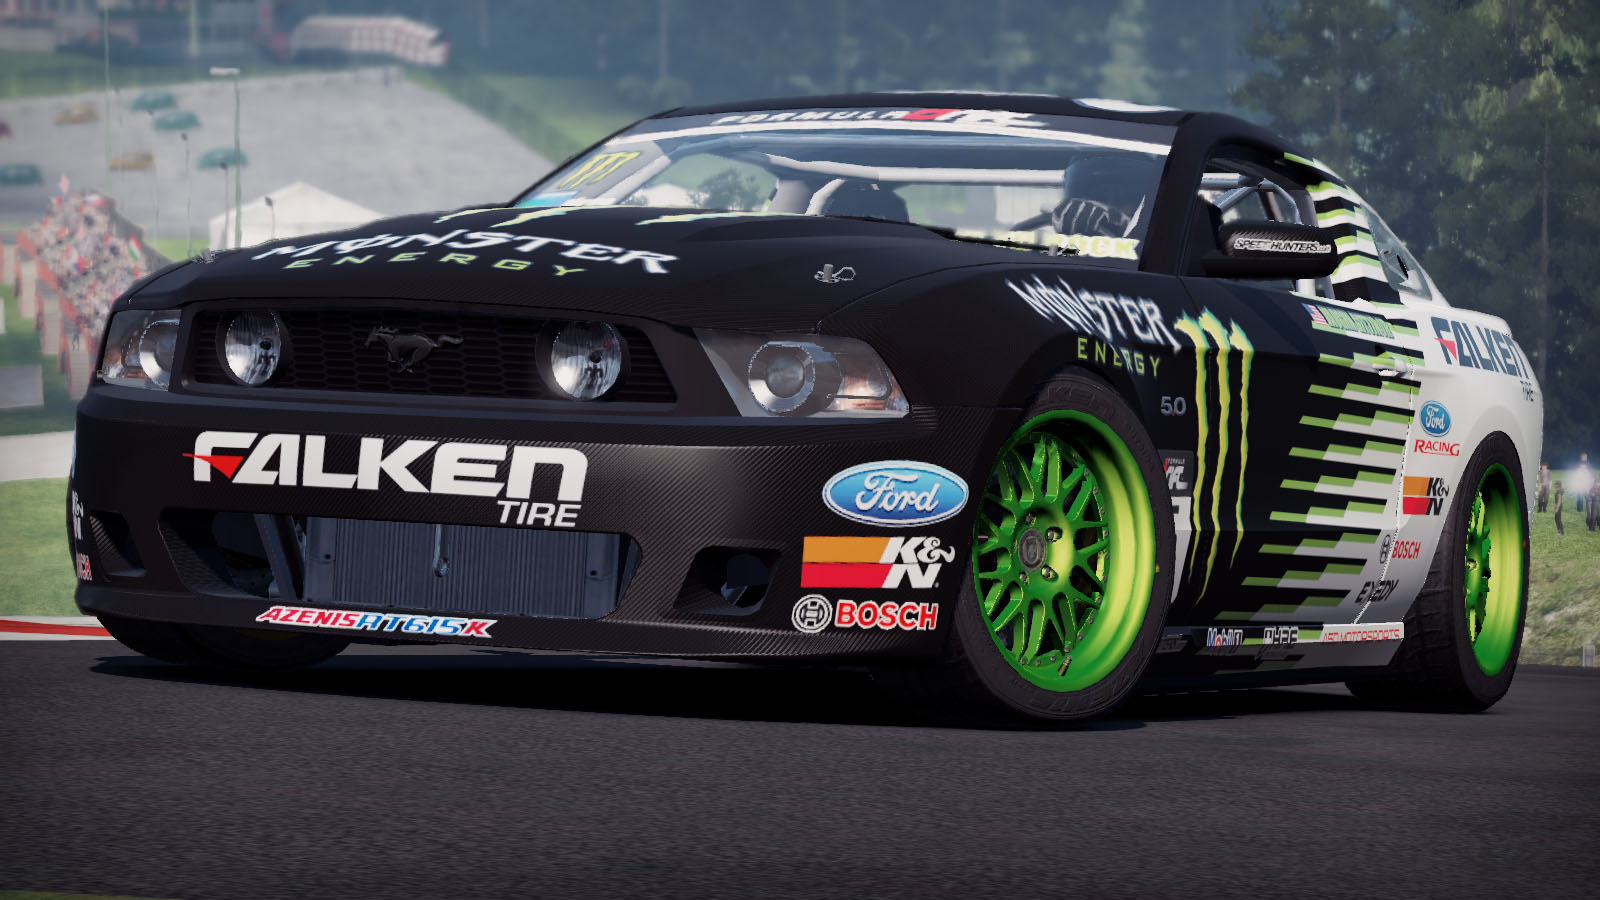 Monster Energy Falken Tire Ford Mustang Gt Need For Speed Wiki